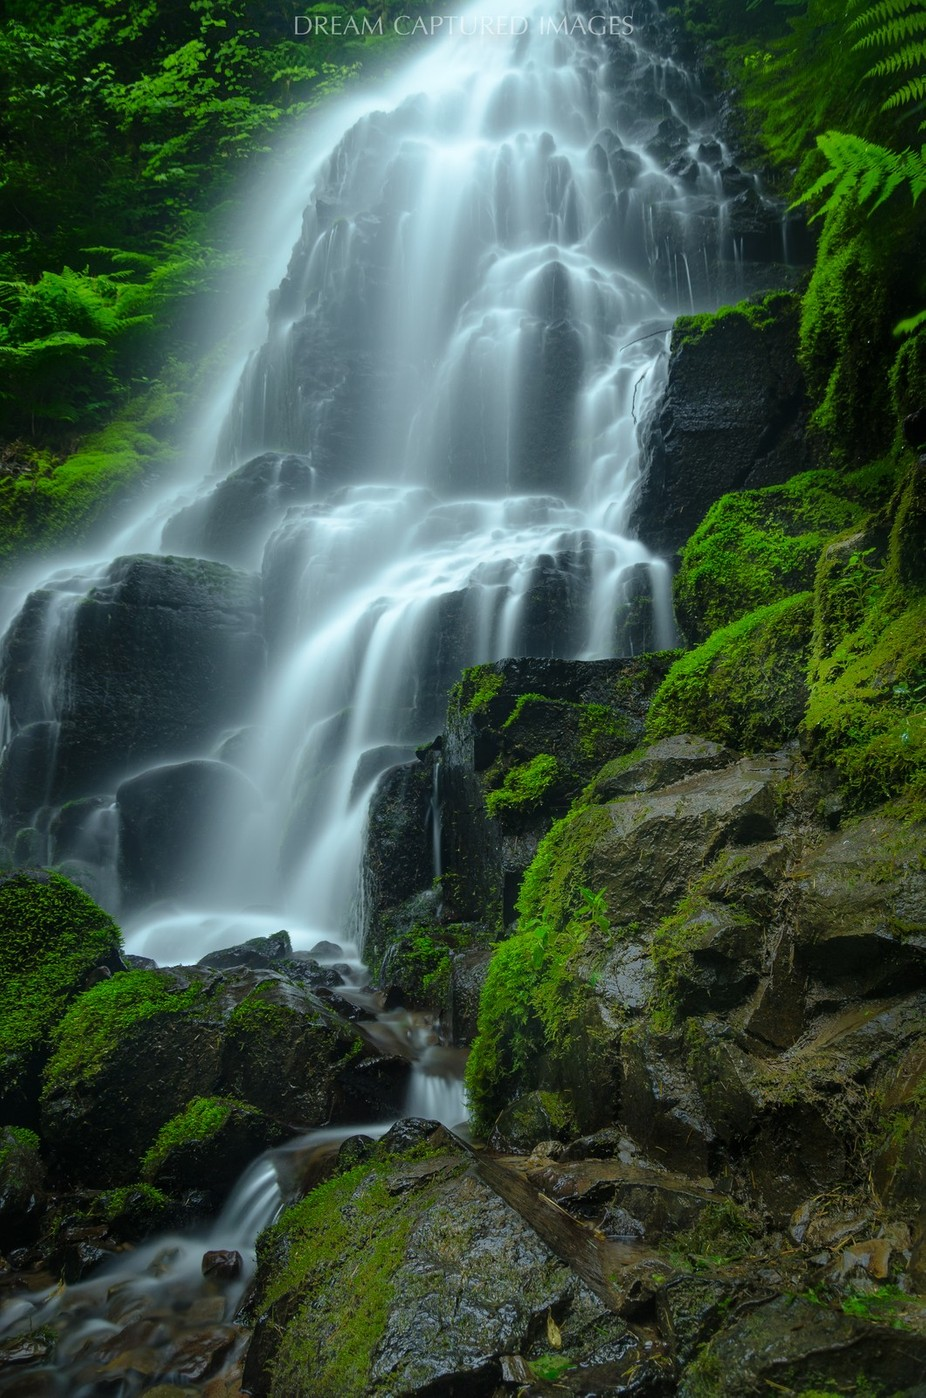 Fairy Falls by DreamCapturedImages - Beautiful Waterfalls Photo Contest